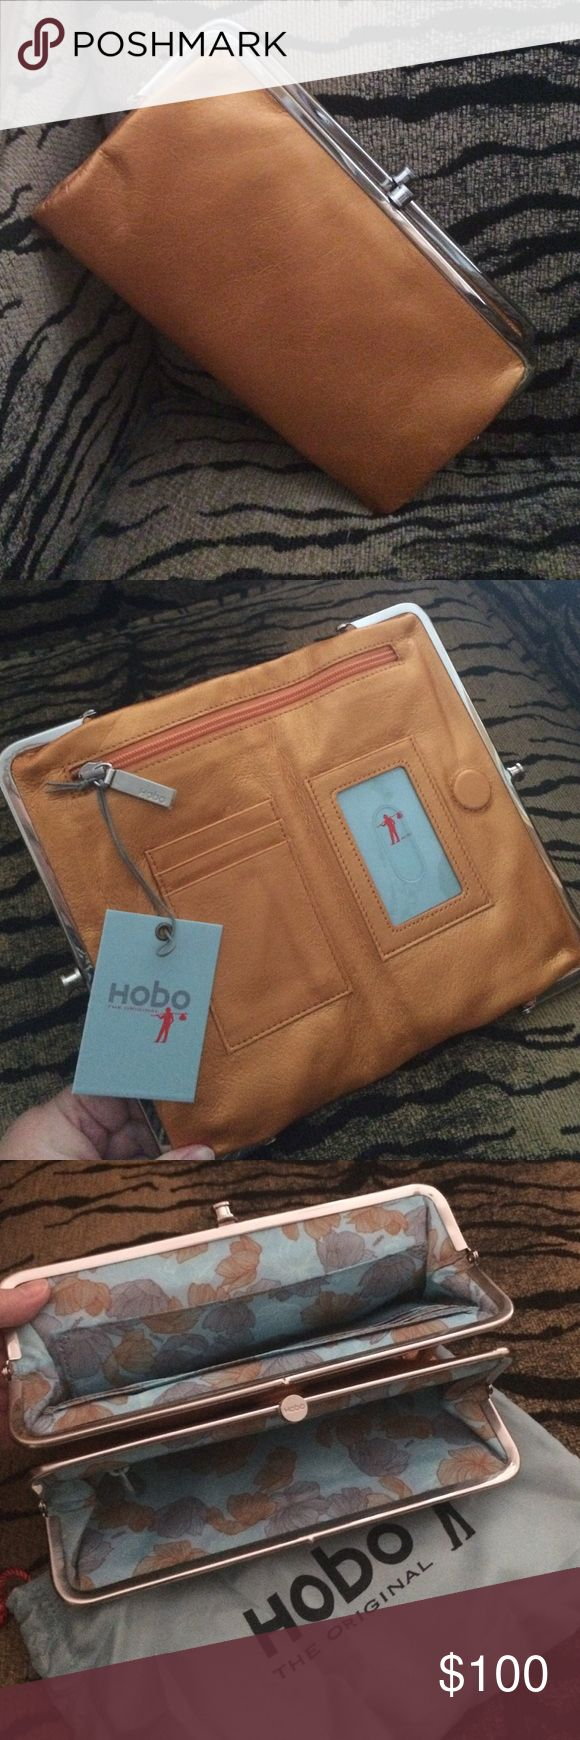 Hobo Lauren Wallet in Radiance! Price is firm! Hobo Lauren Wallet in Radiance! Price is firm! This is New With Tags and comes with dust bag as well!! 100% Genuine Leather. HOBO Bags Wallets